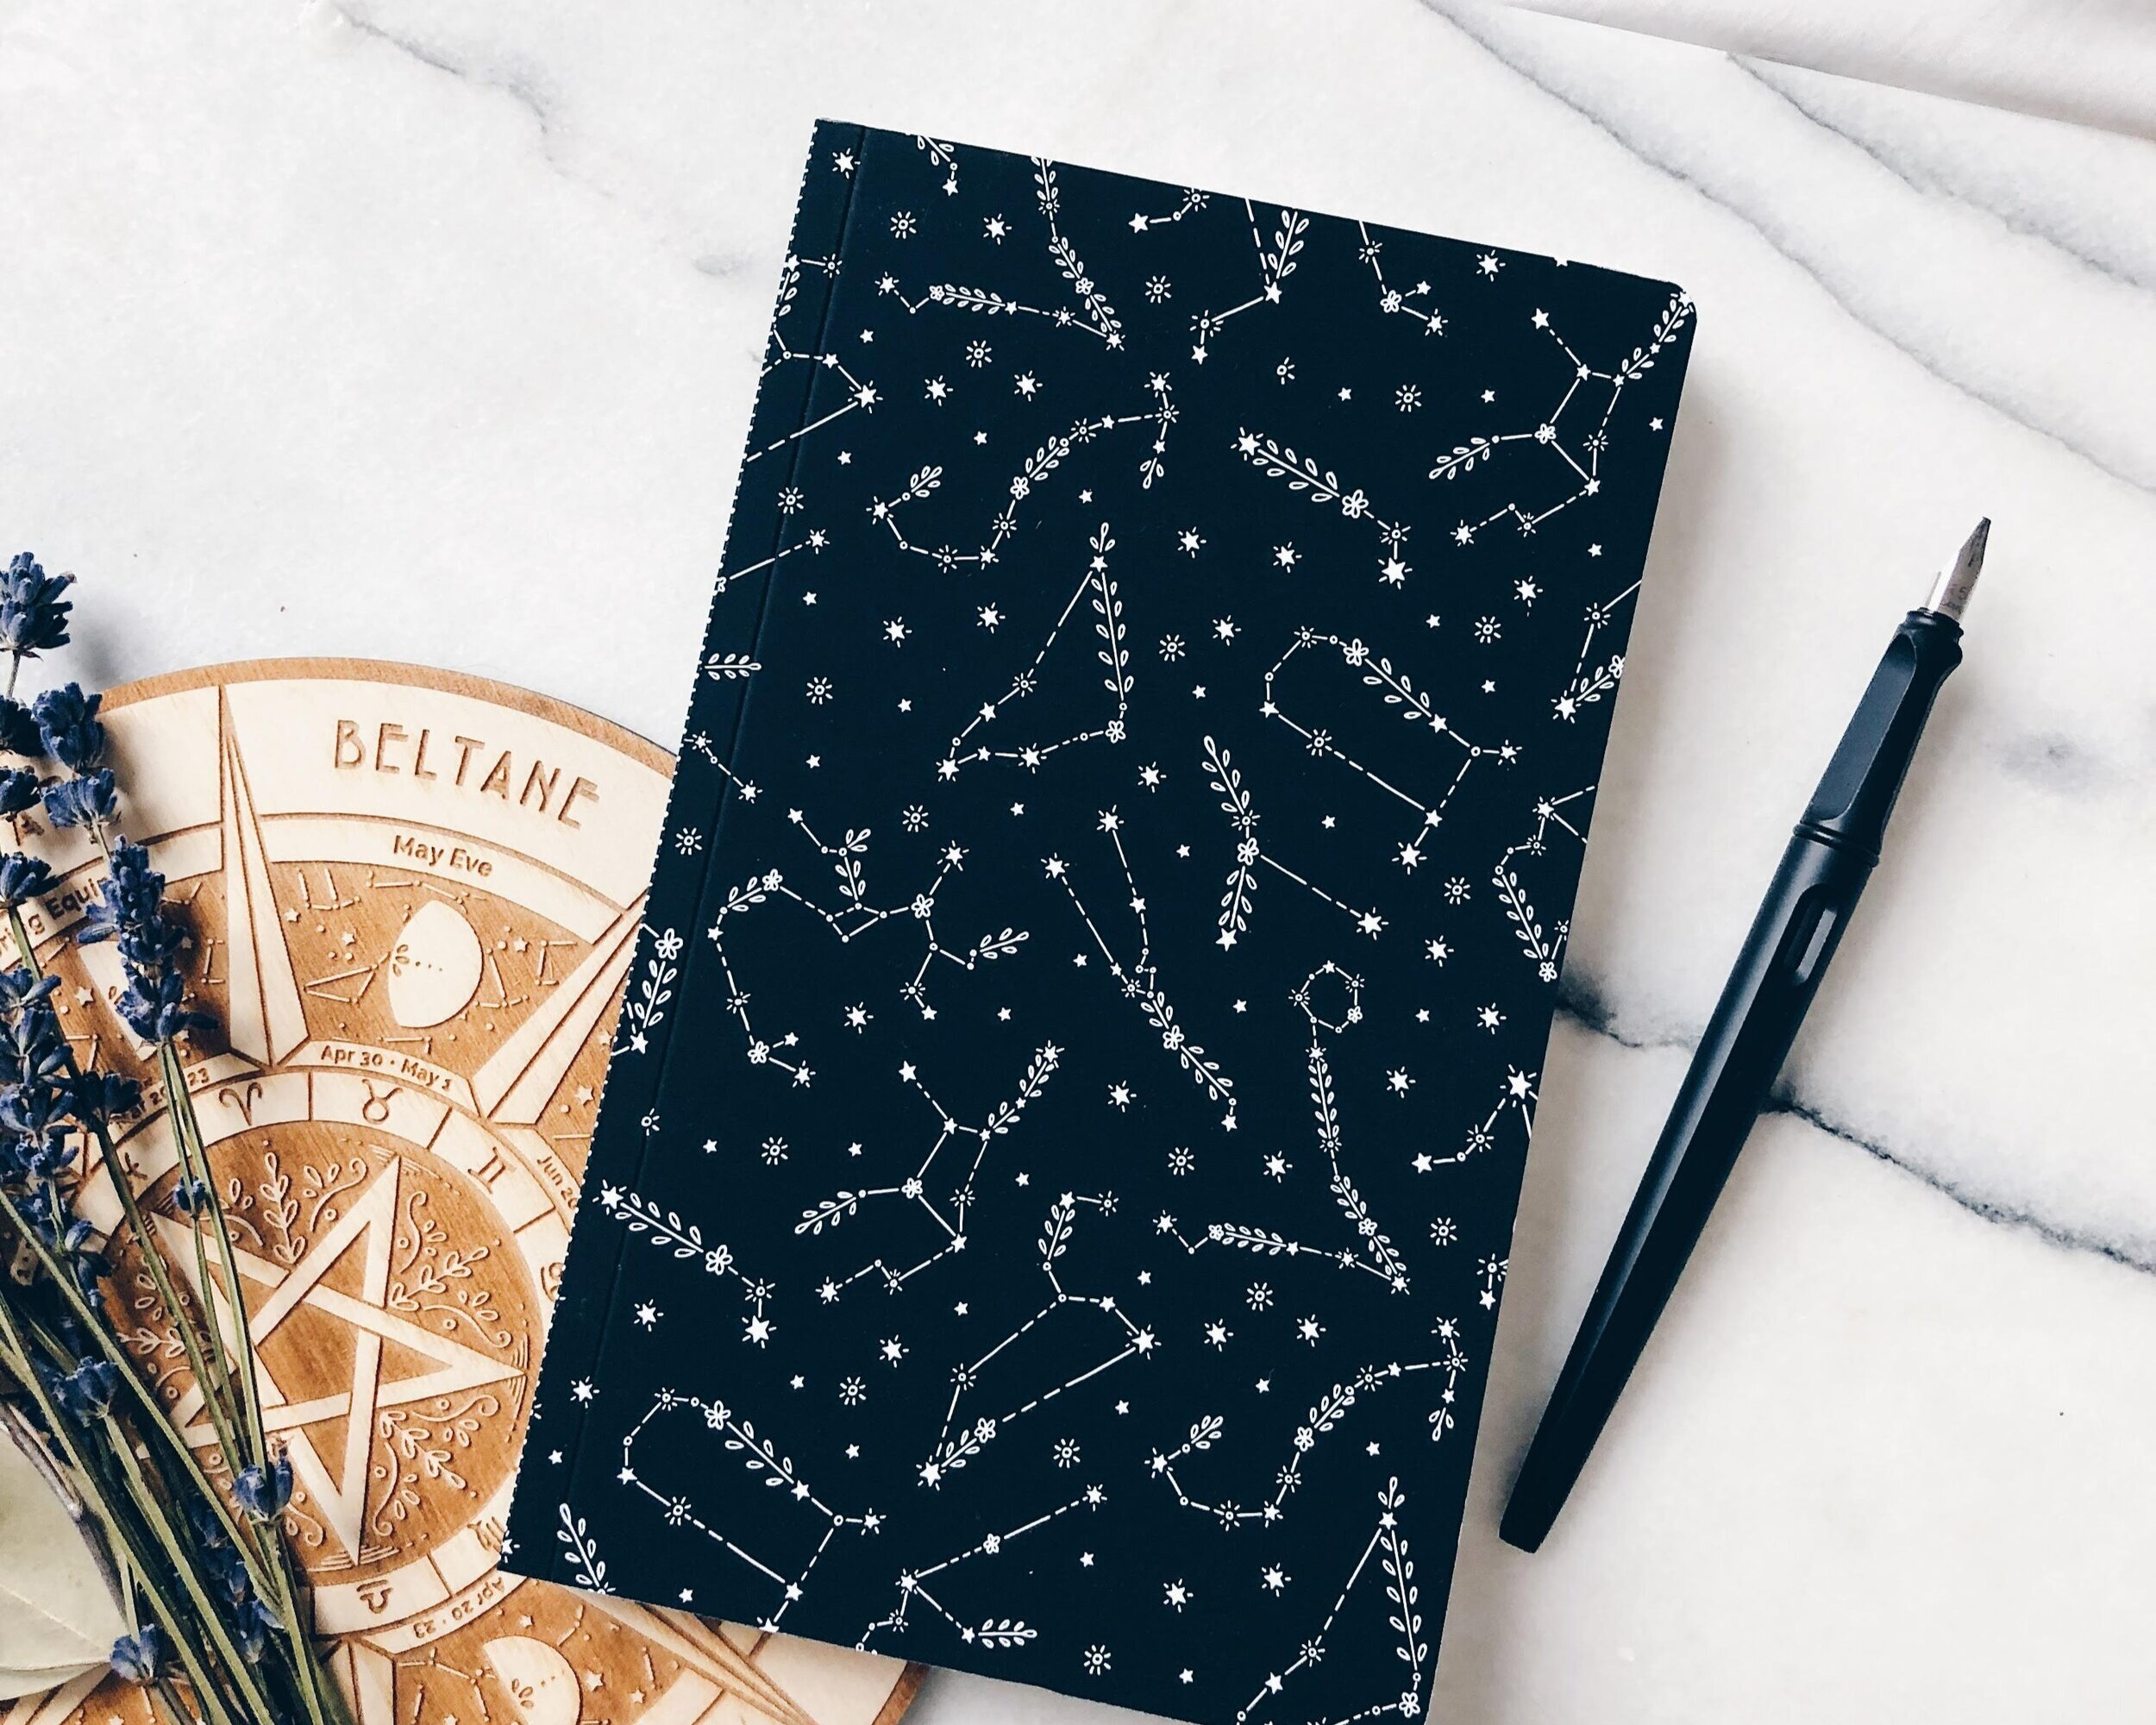 write on the blog - You love to write, create and share your knowledge with the world? Let's chat and find you a place on the blog! I can't wait to see what you have to share with the community.